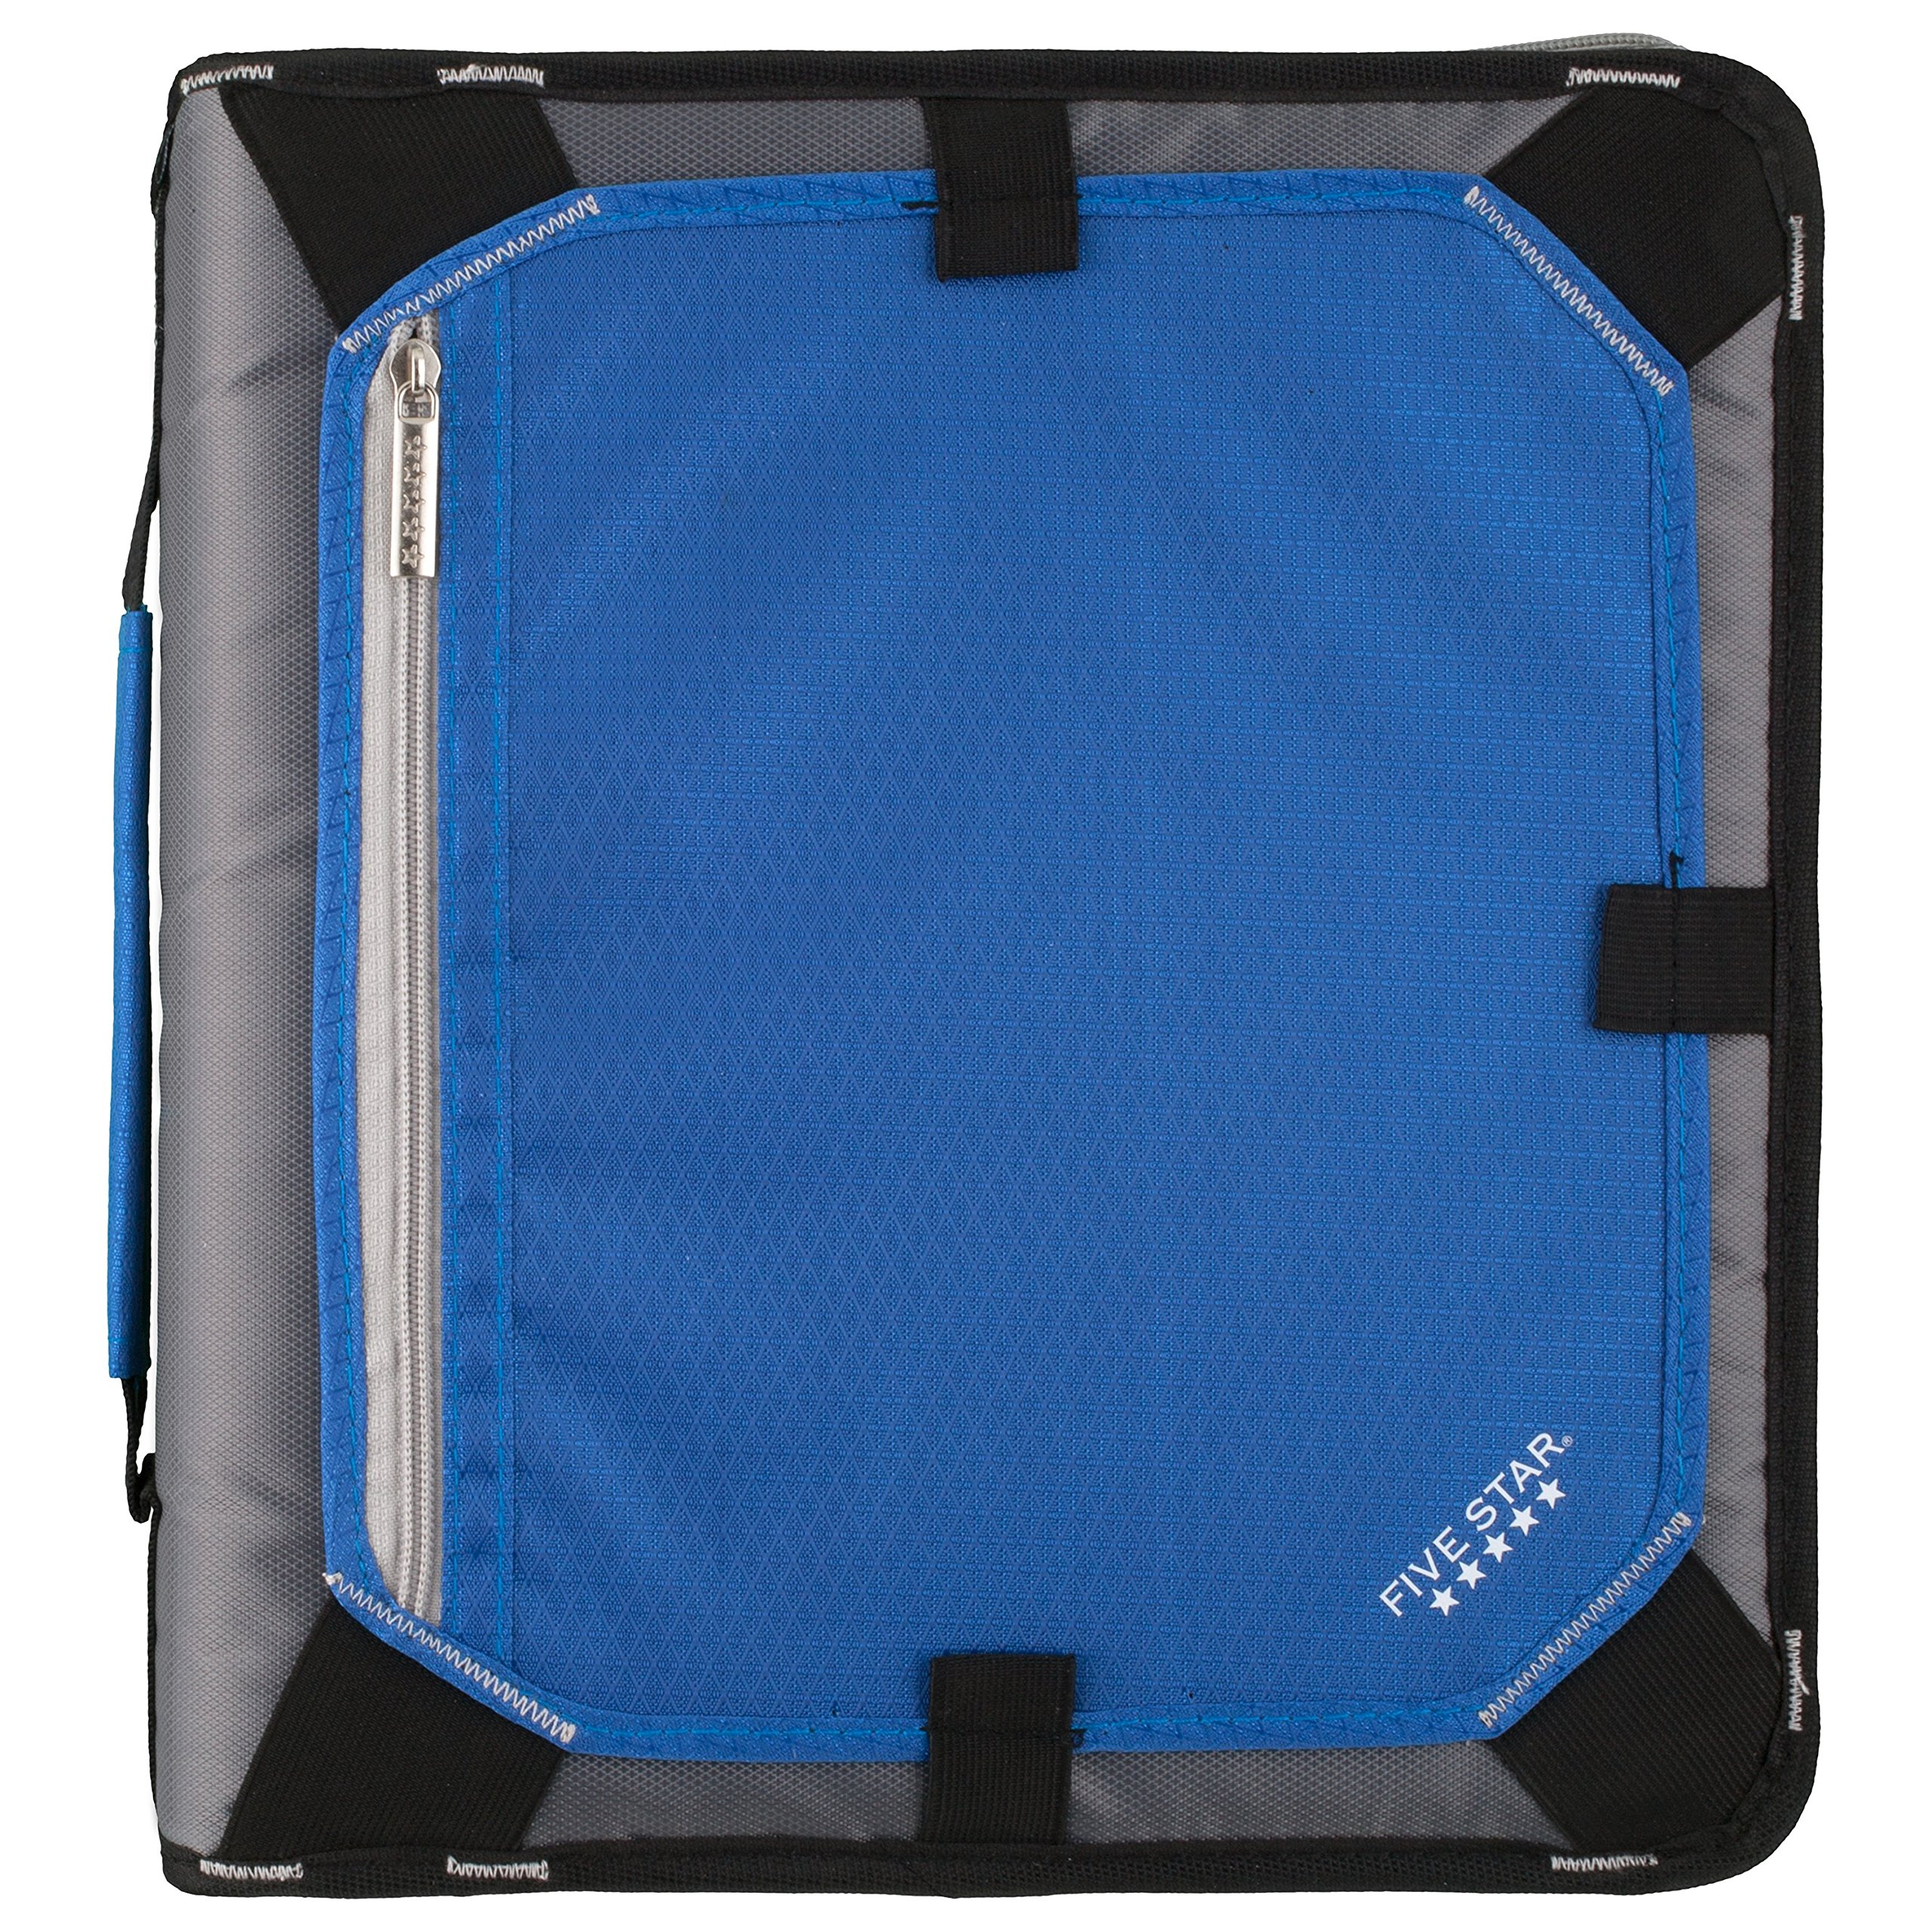 Five Star 2 Inch Zipper Binder, Expansion Panel, Durable, Cobalt Blue / Black (29052BC7)